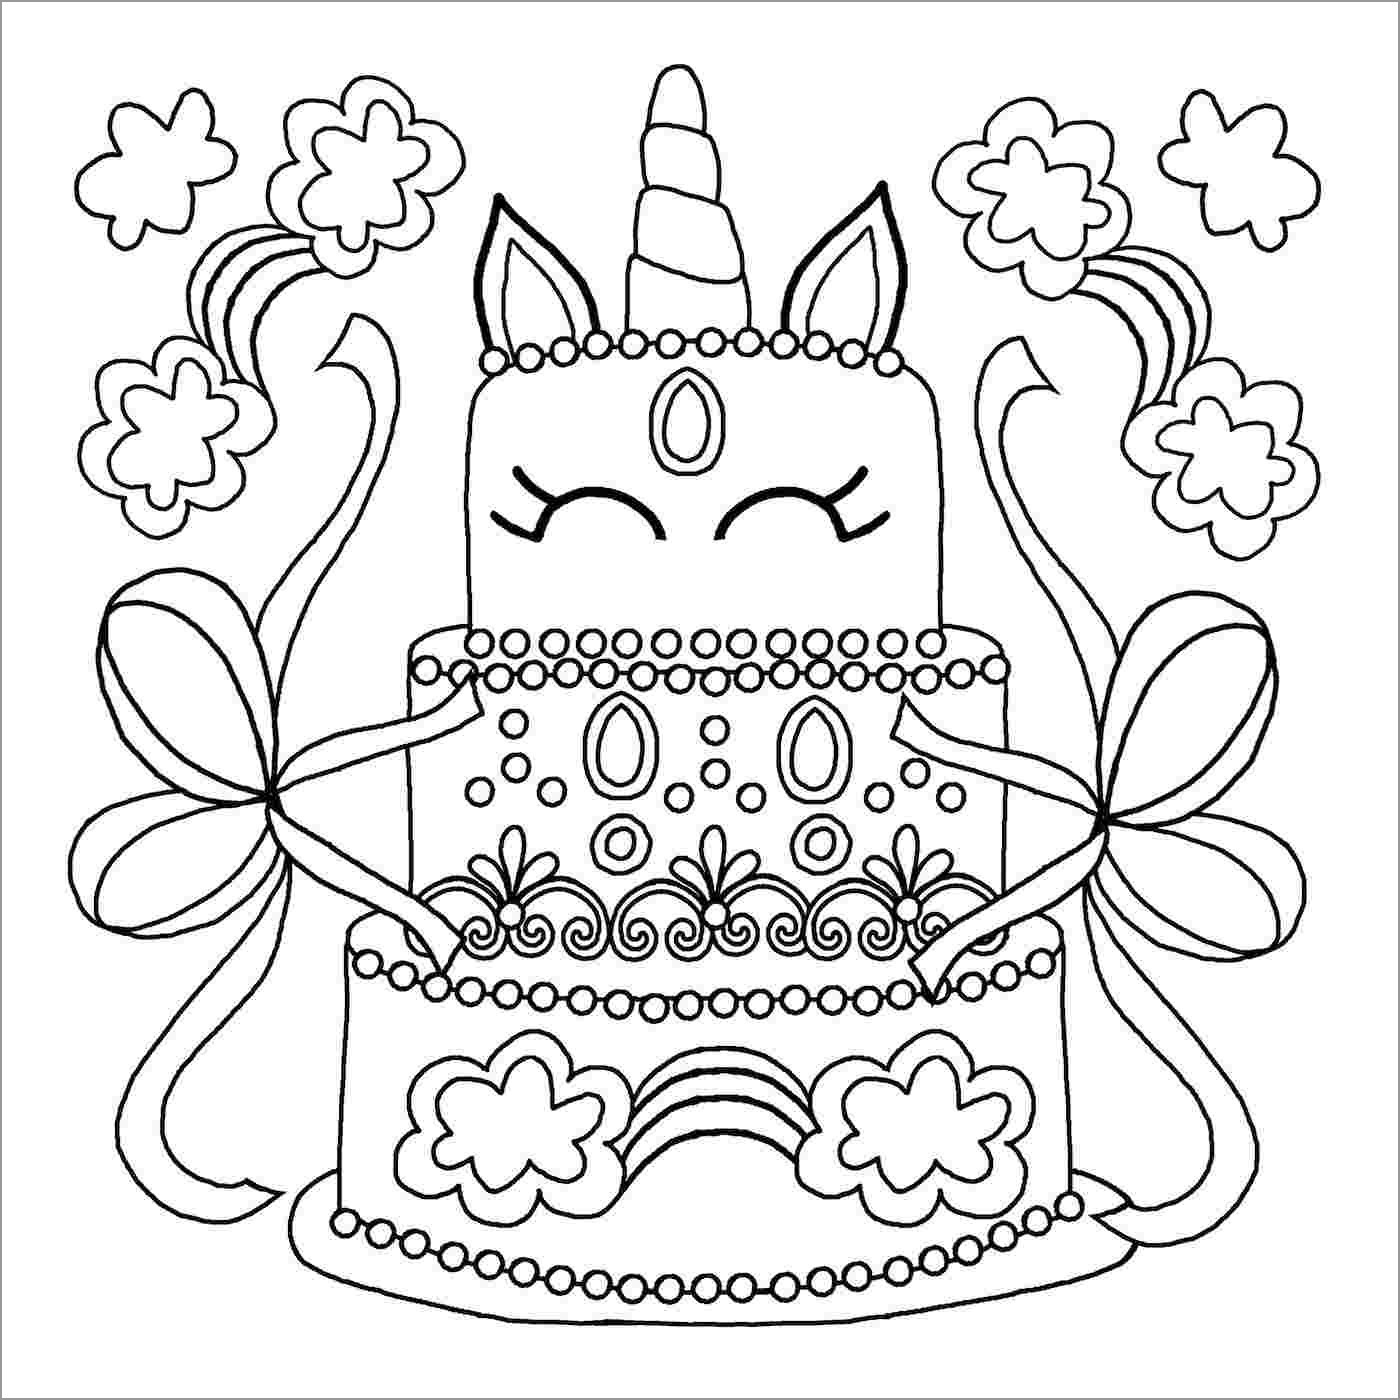 Unicorn Cake Coloring Page for Kids